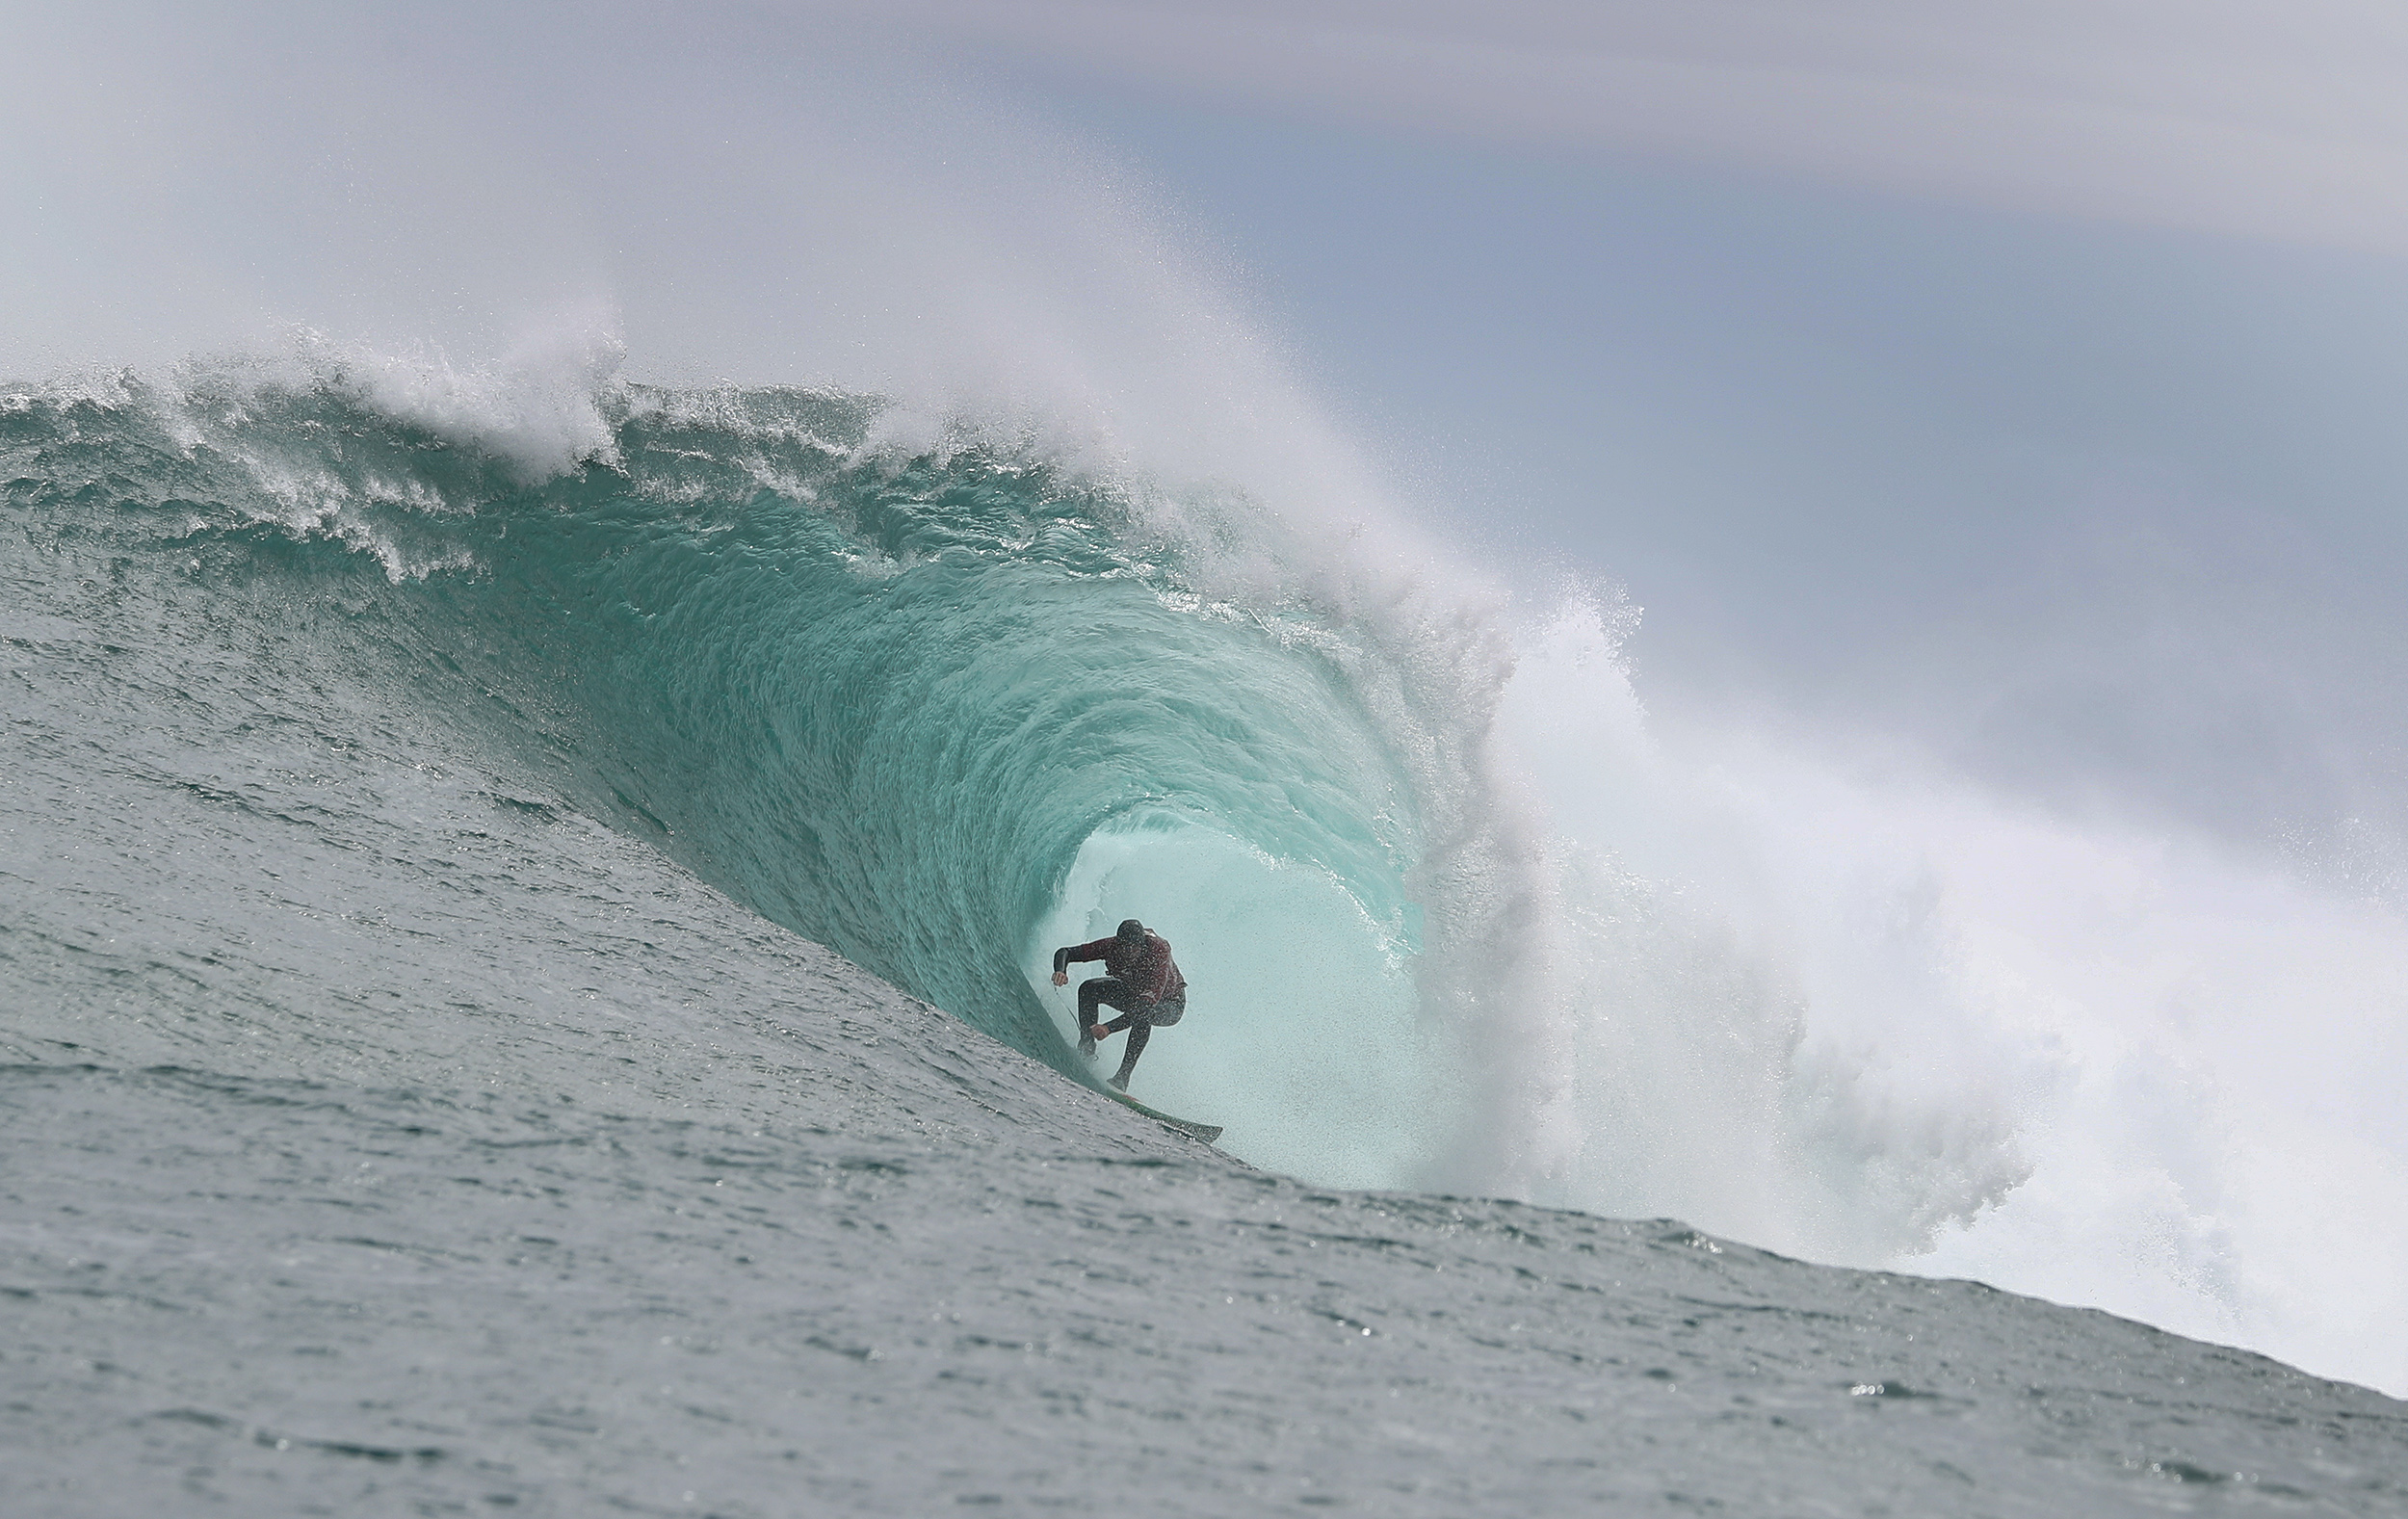 BigWave,Surfer,Watersafty,Water,Shark,REBELSessions, Mike Schlenbach ,Dungeons, perfect Barrel,REBEL Sessions, Dungeons, BigWaveSurfing, Matt Bromley, Odd Perssons,Tommy Kruger,Mike Schlebach,